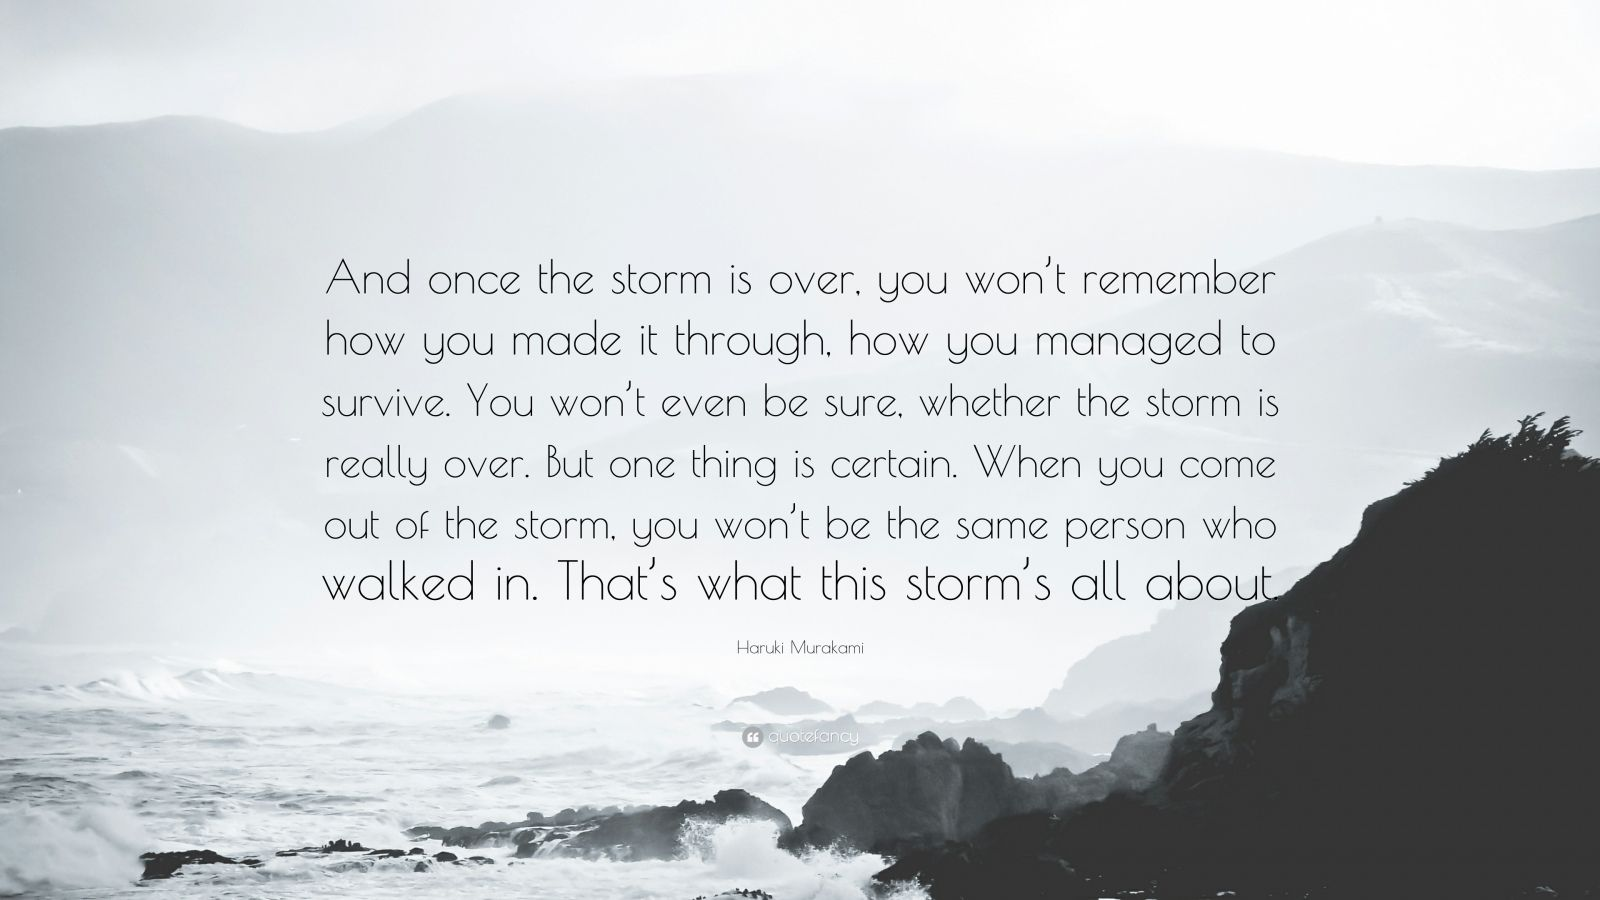 """Haruki Murakami Quote: """"And once the storm is over, you won't remember how you made it through, how you managed to survive. You won't even be sure, whether the storm is really over. But one thing is certain. When you come out of the storm, you won't be the same person who walked in. That's what this storm's all about."""""""